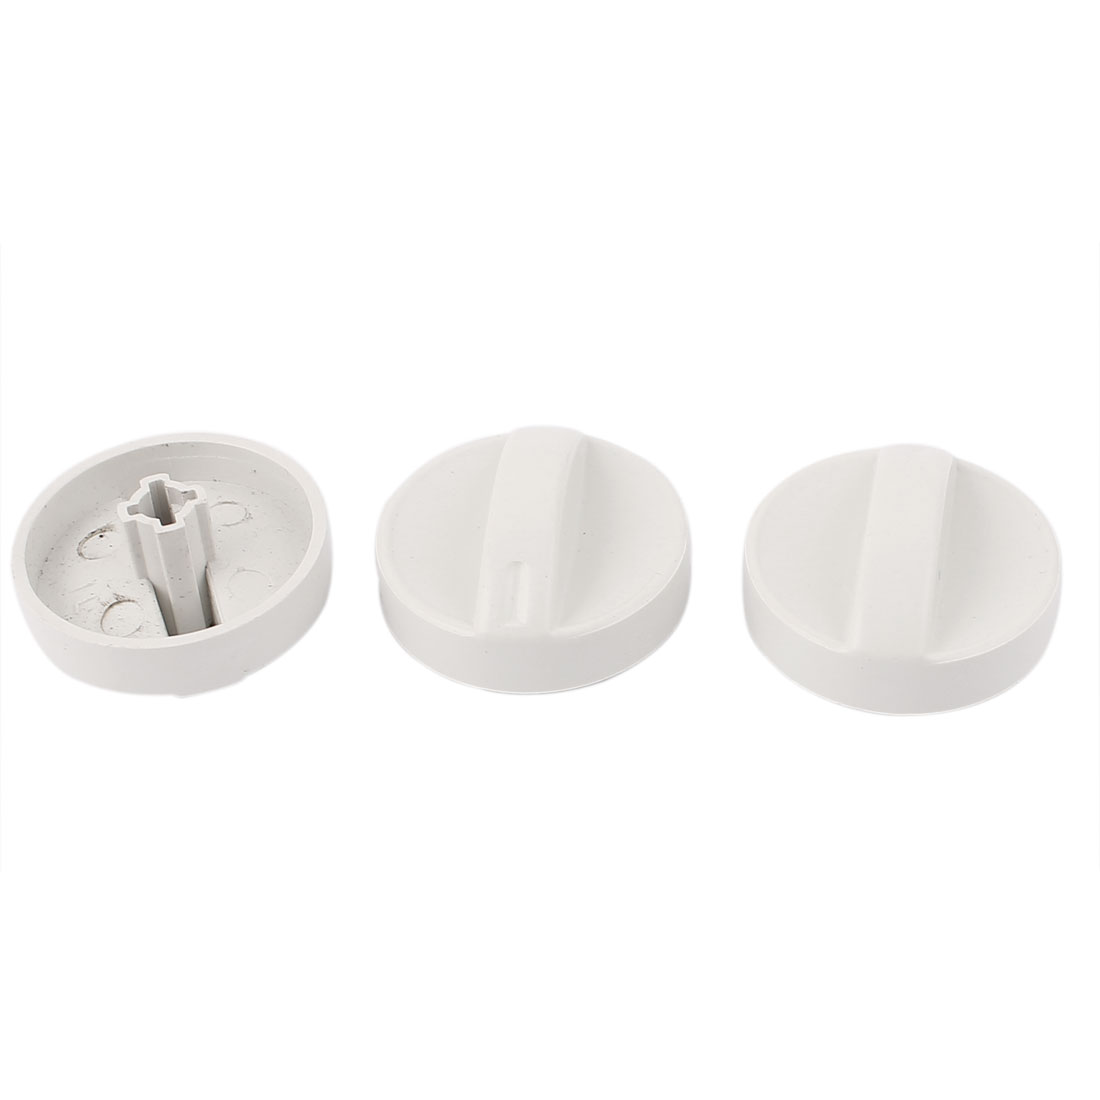 Washing Machine Cross Slot 6mm Inner Dia Turning Timer Knob White 3pcs